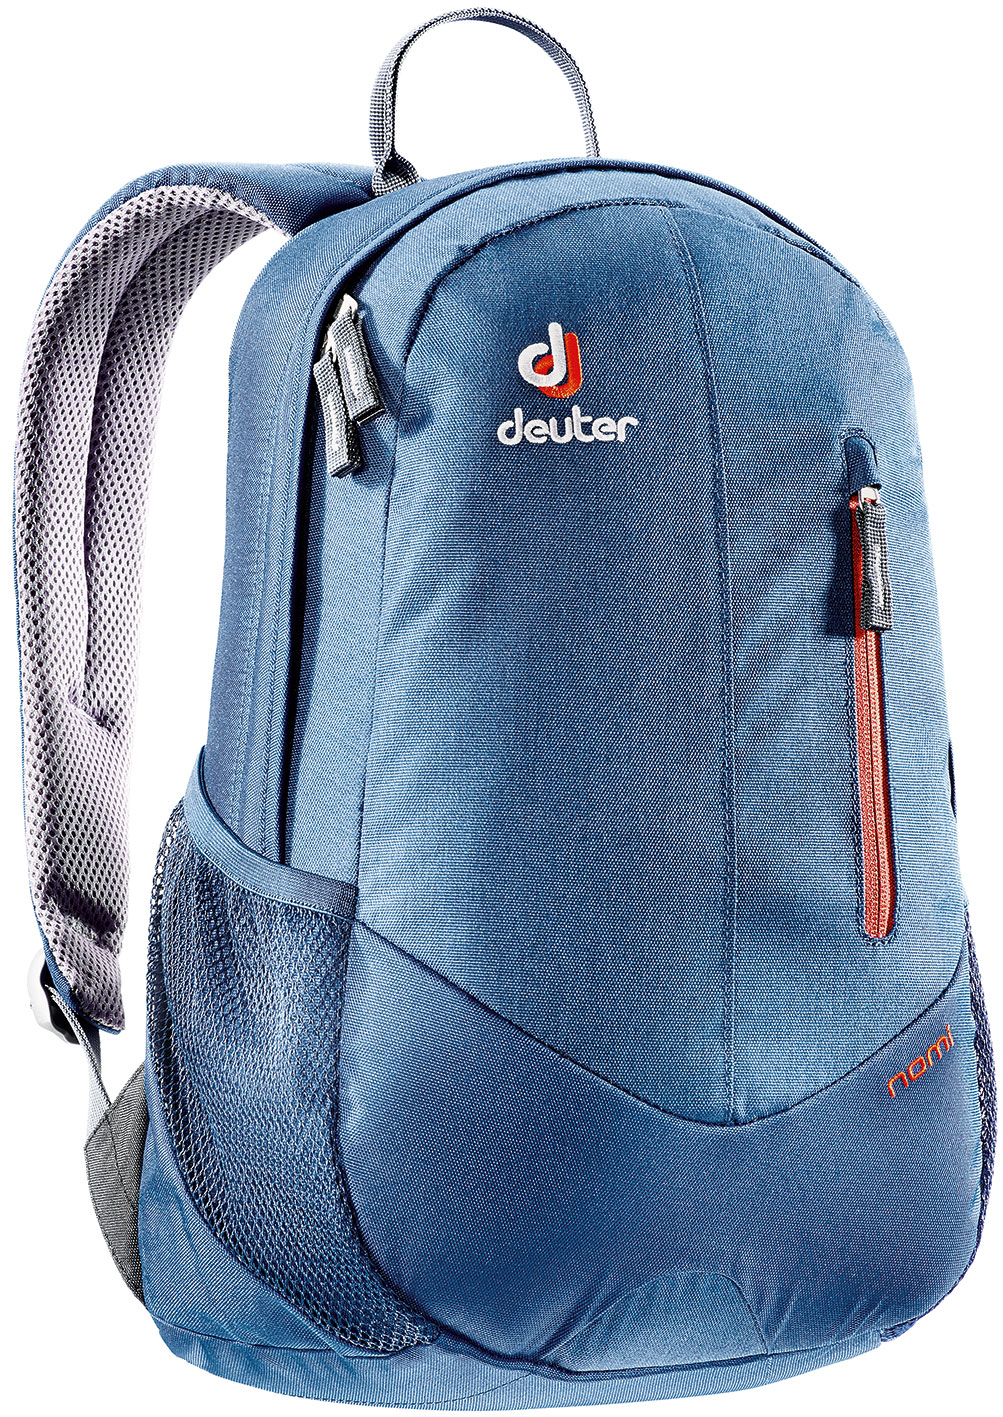 Deuter - Nomi midnight dresscode - Daypacks -